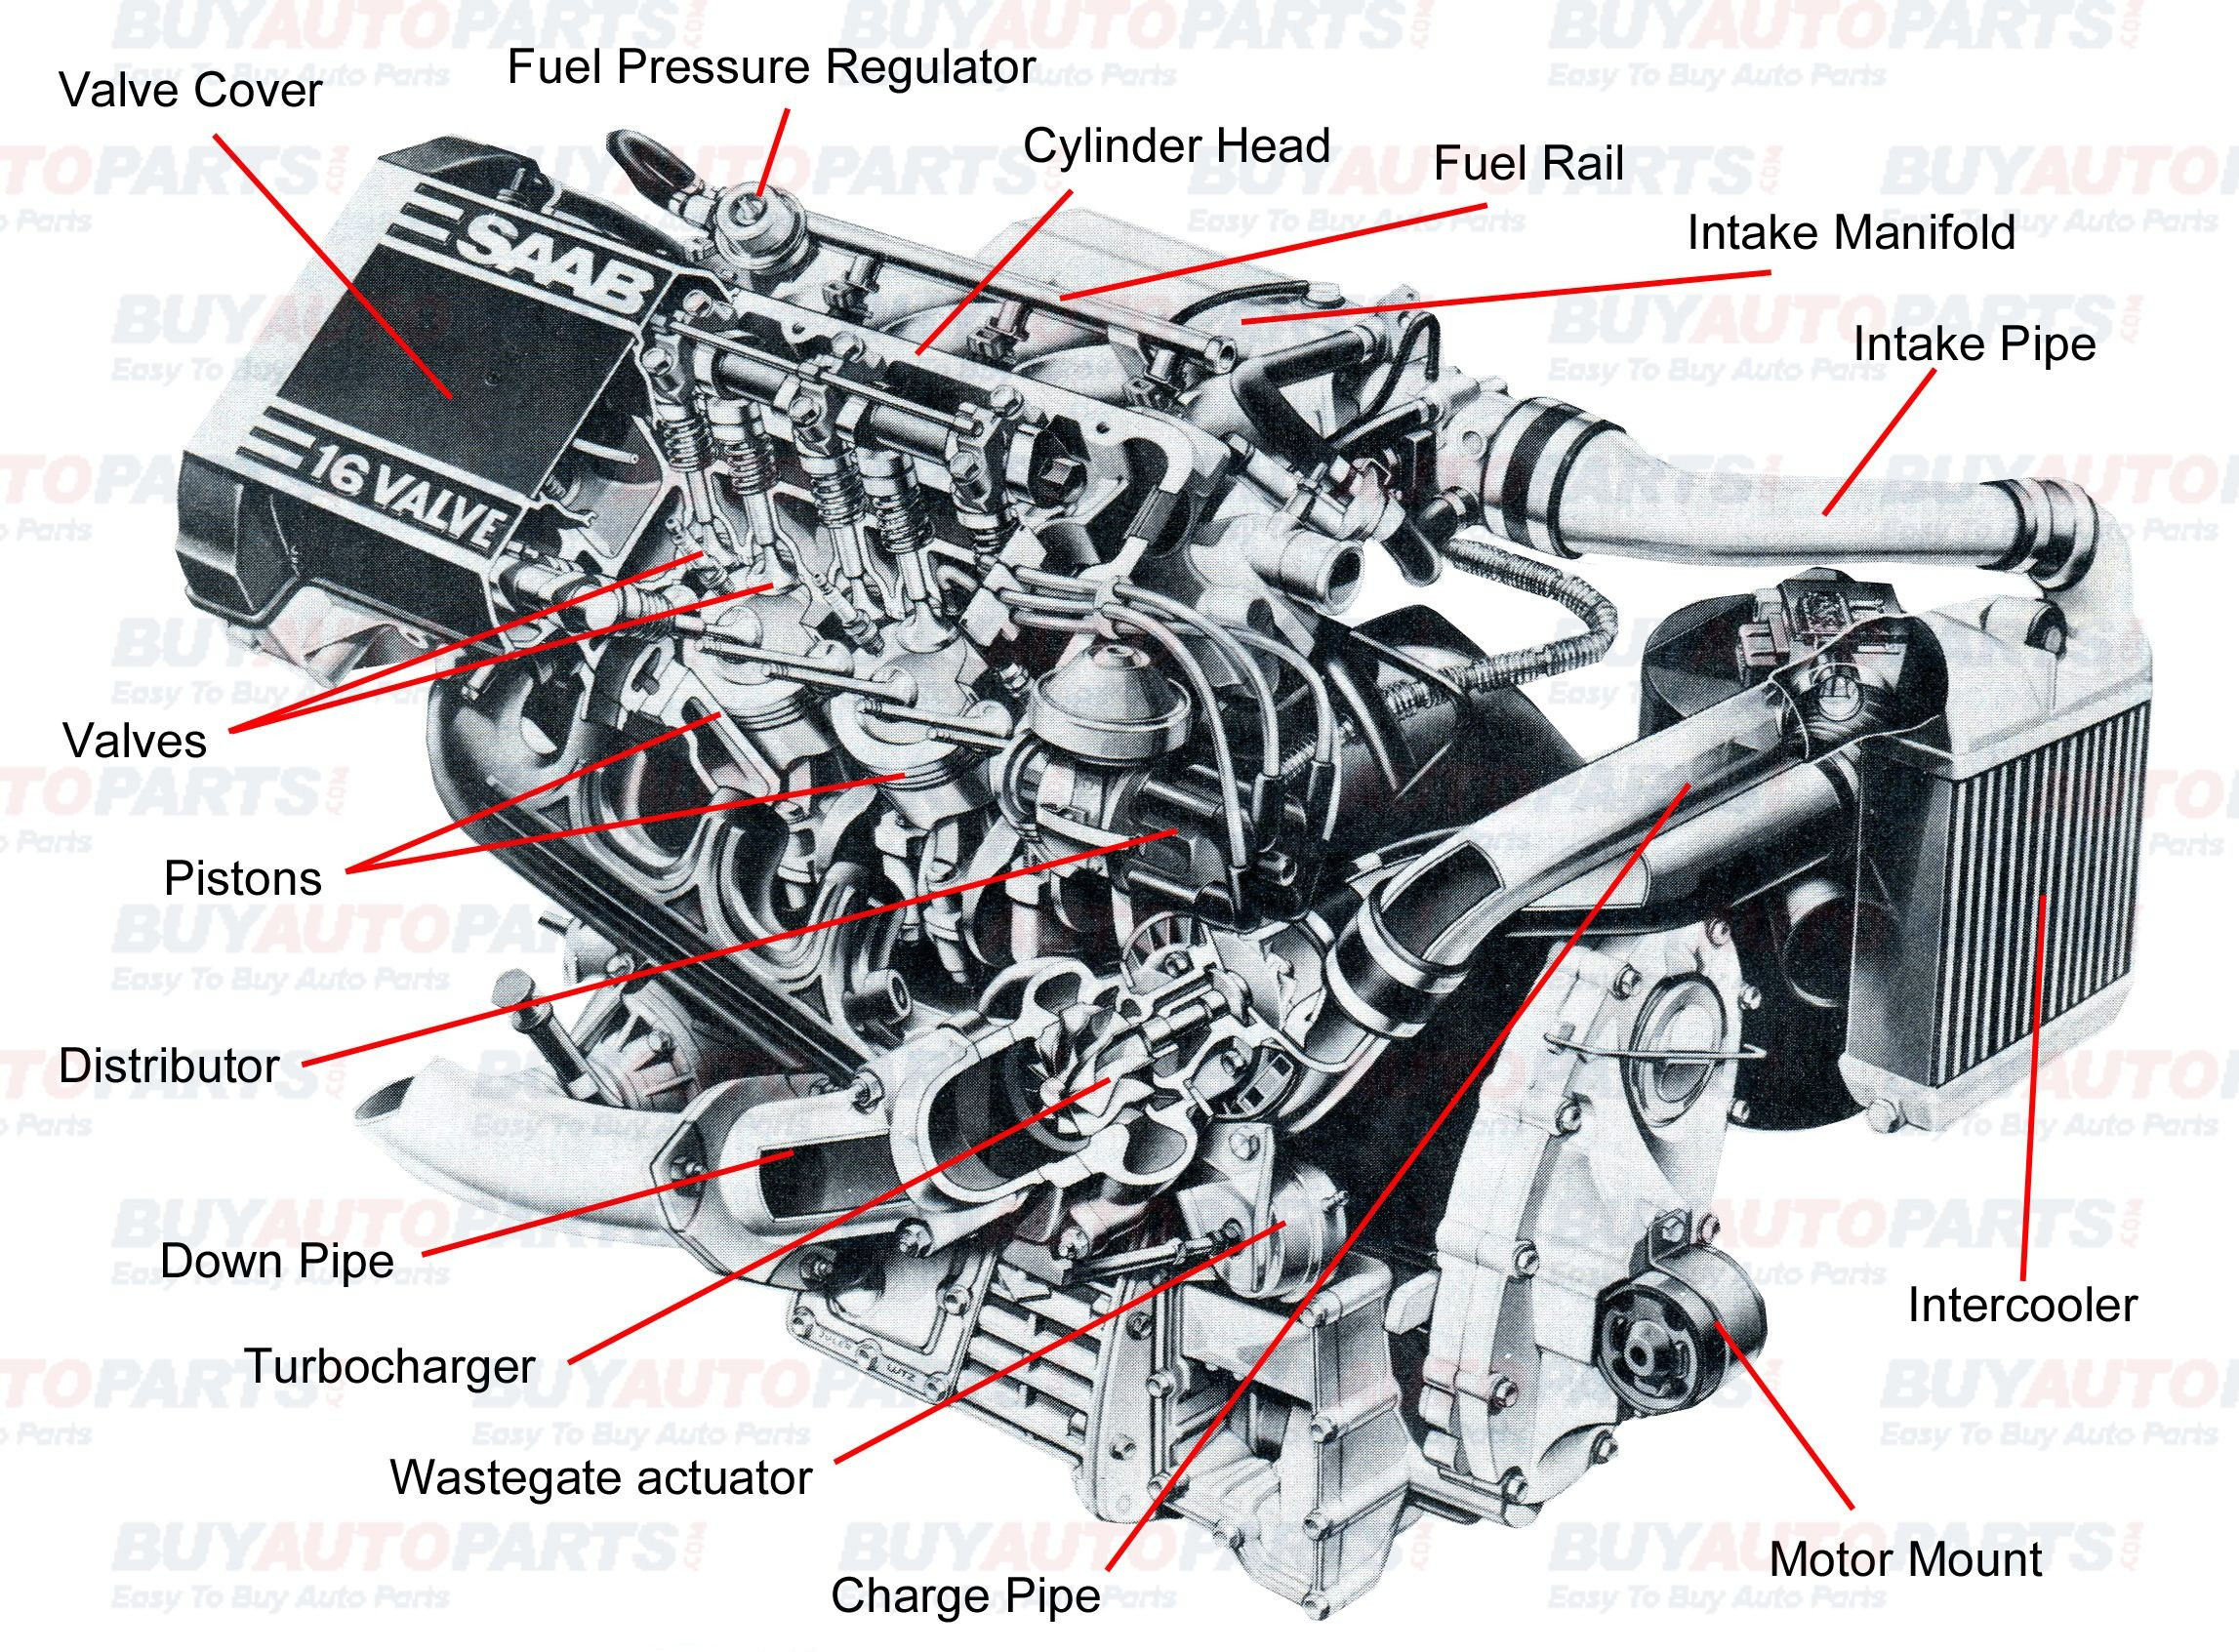 Hybrid Engine Diagram Pin by Jimmiejanet Testellamwfz On What Does An Engine with Turbo Of Hybrid Engine Diagram Hybrid Auto Informations